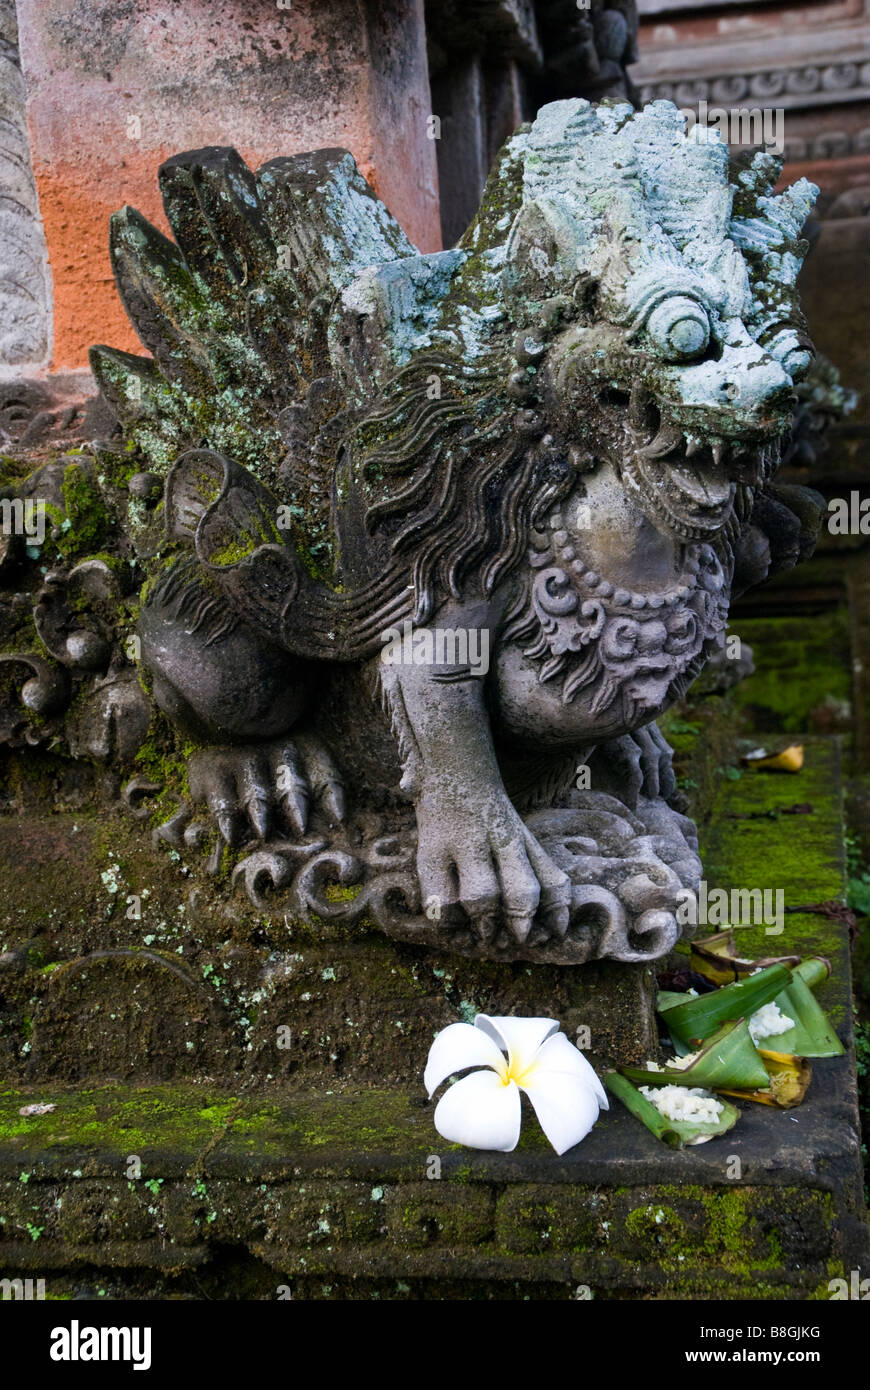 Demon statue at Pura Taman Saraswati temple in Ubud, Bali, Indonesia - Stock Image